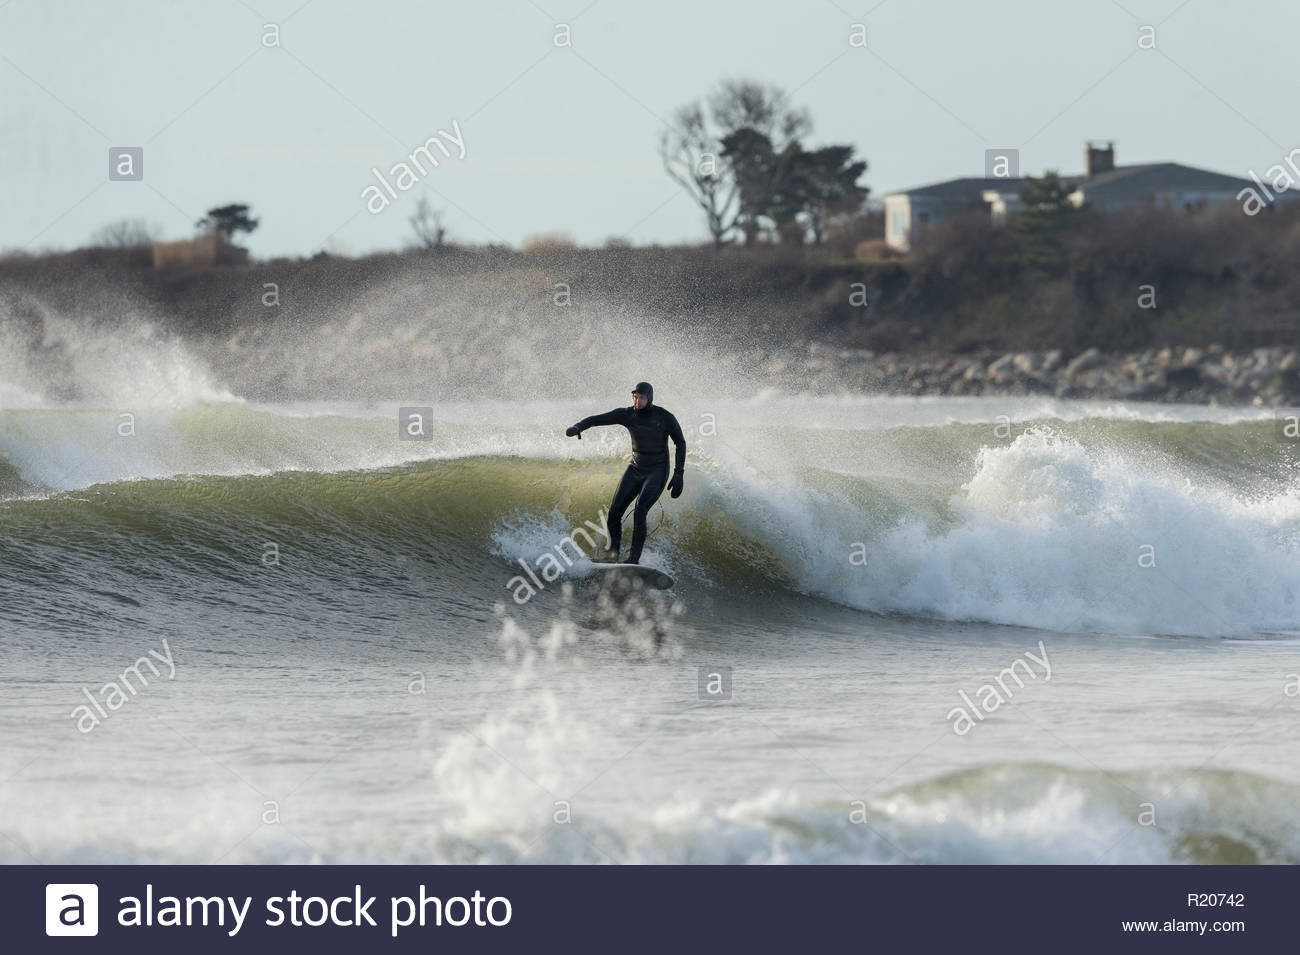 Little Compton, Rhode Island, USA - January 17, 2016: Surfer on middle wave in a set at Goosewing Beach - Stock Image